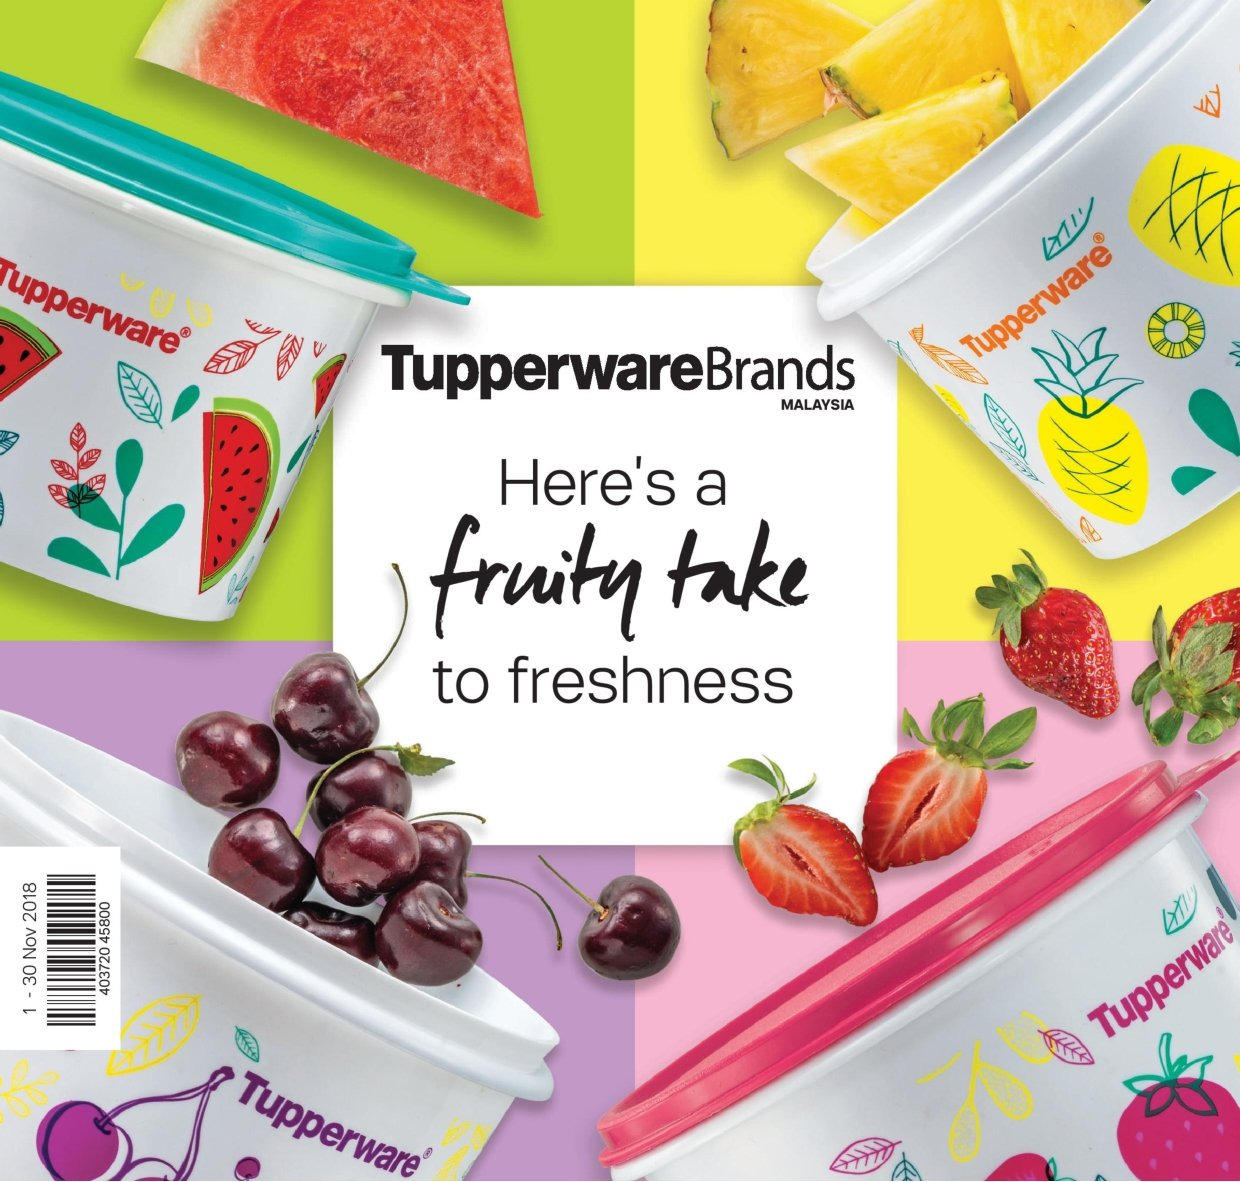 Iklan TupperwareBrands - 01.11.2018 - 30.11.2018. Halaman 1.